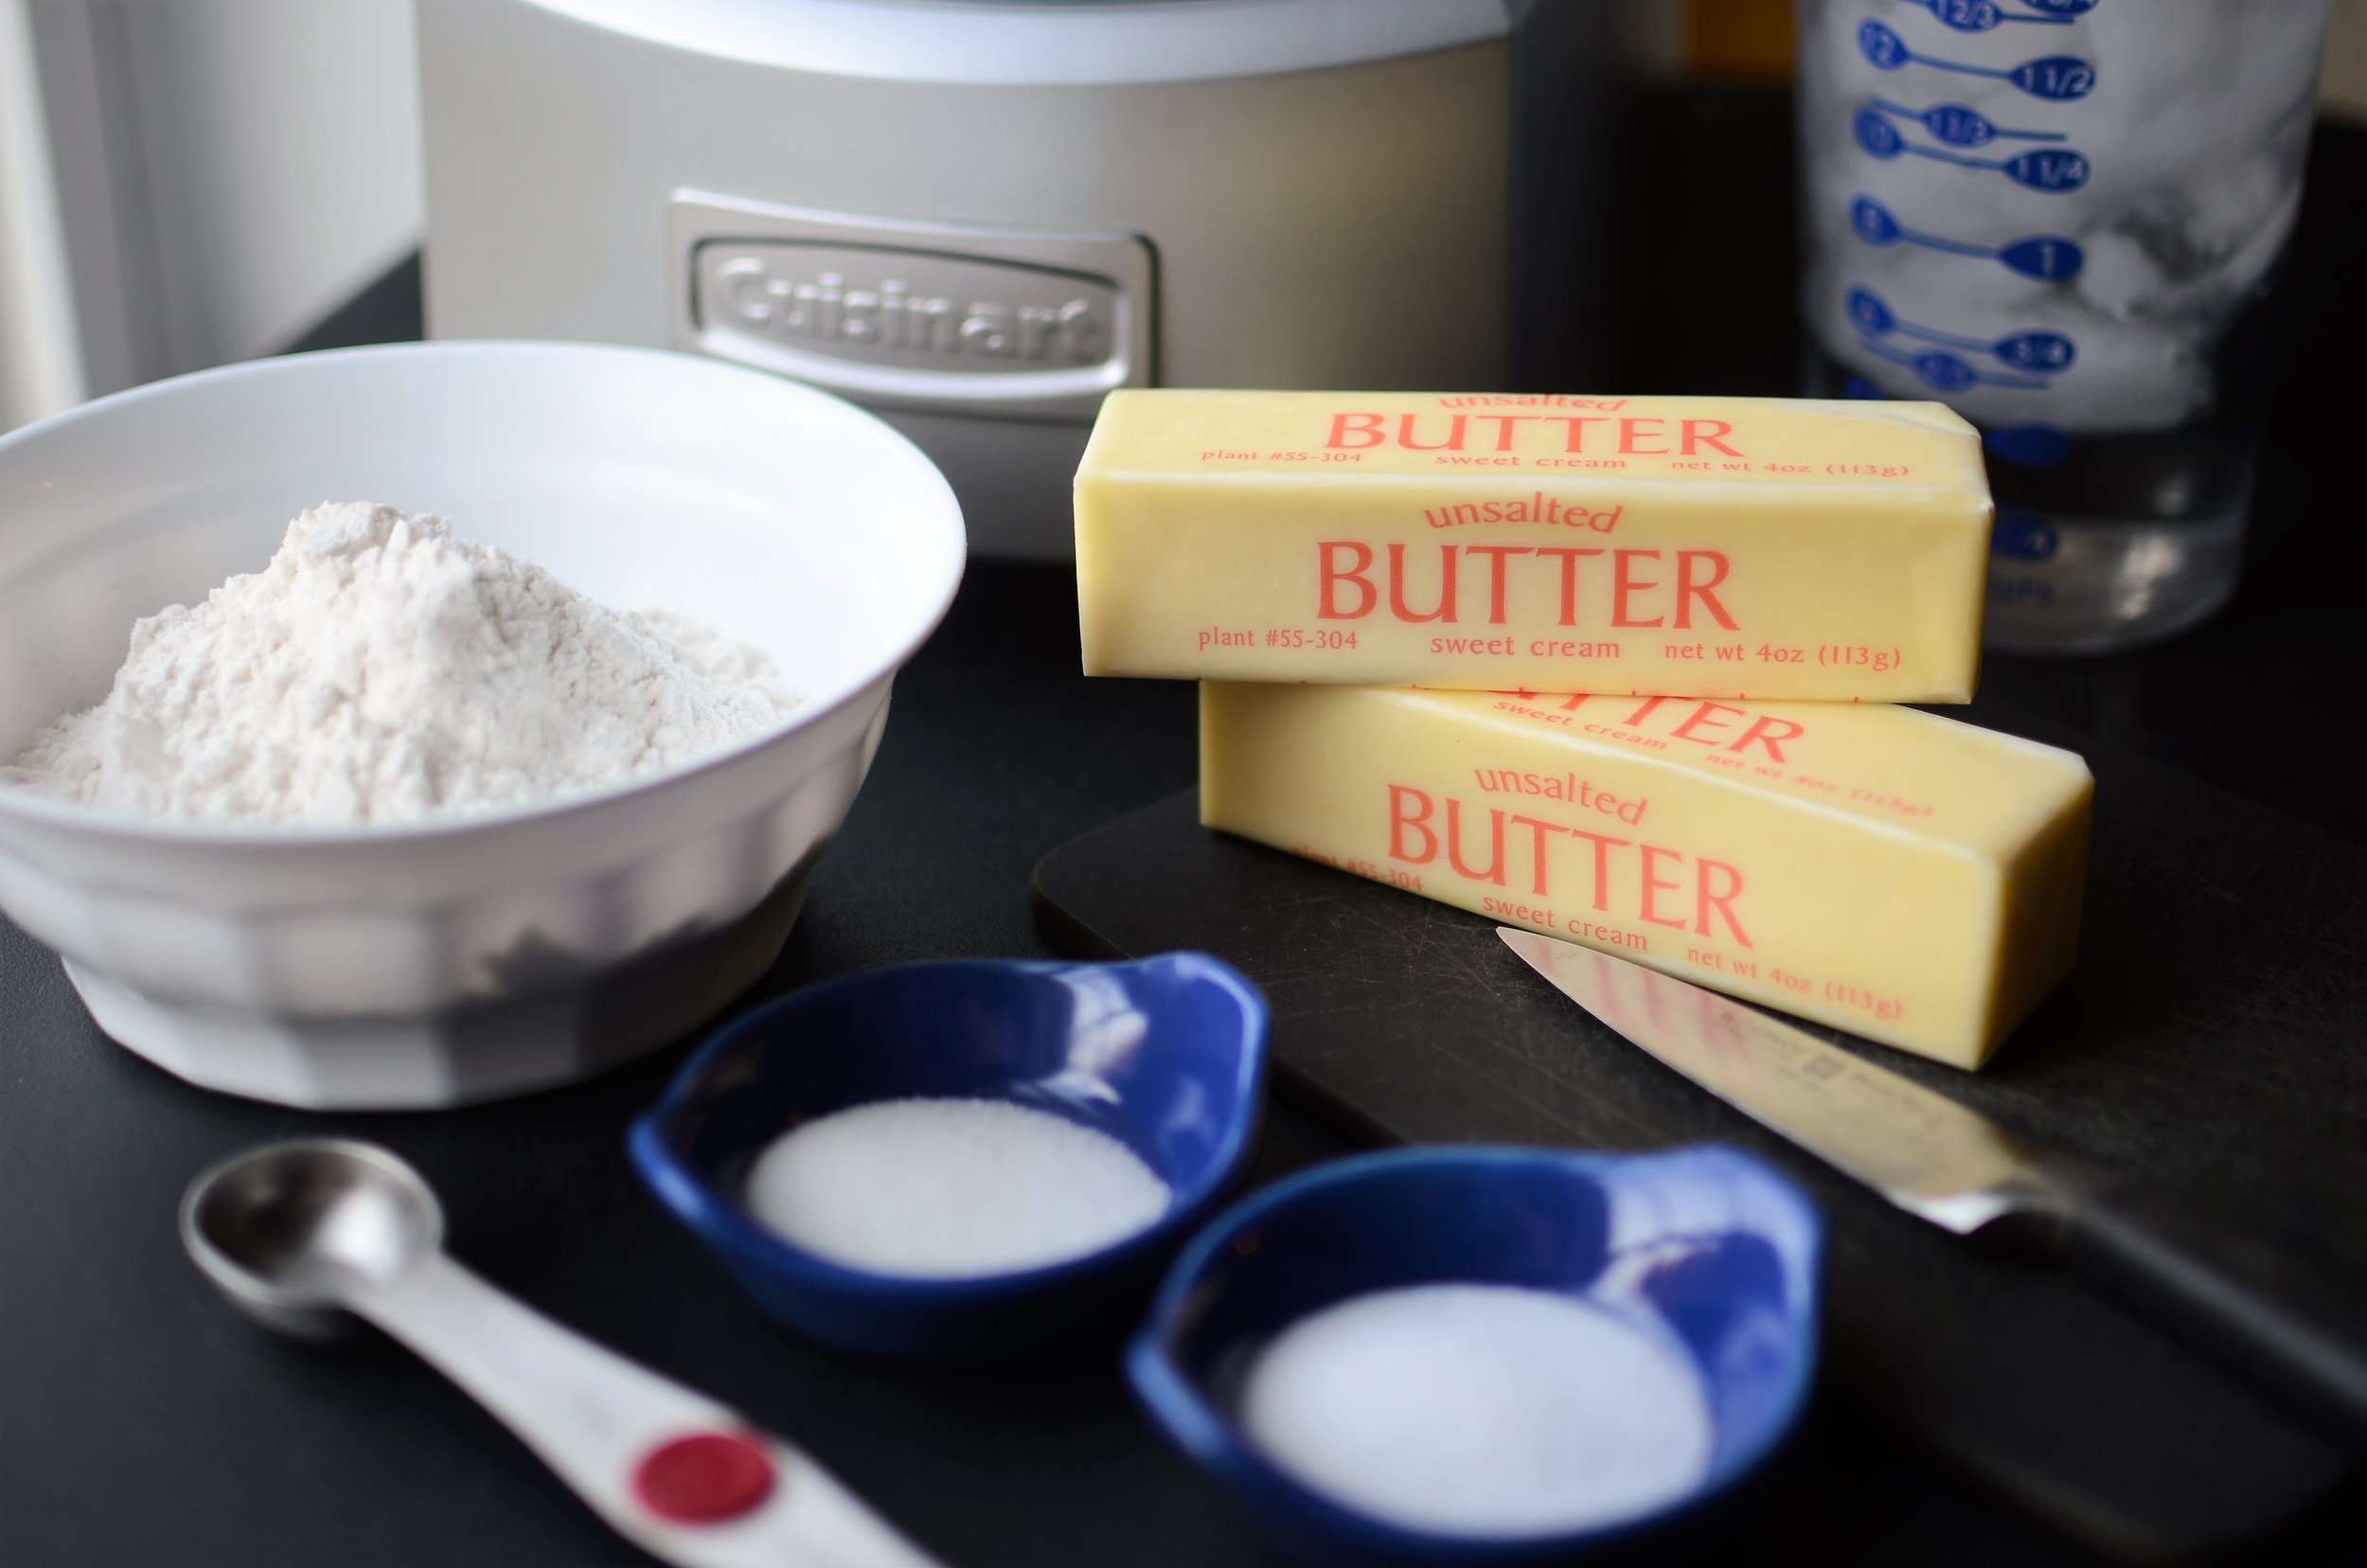 DIY All Butter Pie Crust - ButterYum. pie crust with butter. flaky pie crust recipe. how to make pie crust with food processor. food processor pie crust. pie crust from scratch. scratch pie crust recipe. how to make pie crust. scratch pie crust butter. diy pie crust. butter pie crust by hand. how to make flaky pie crust.